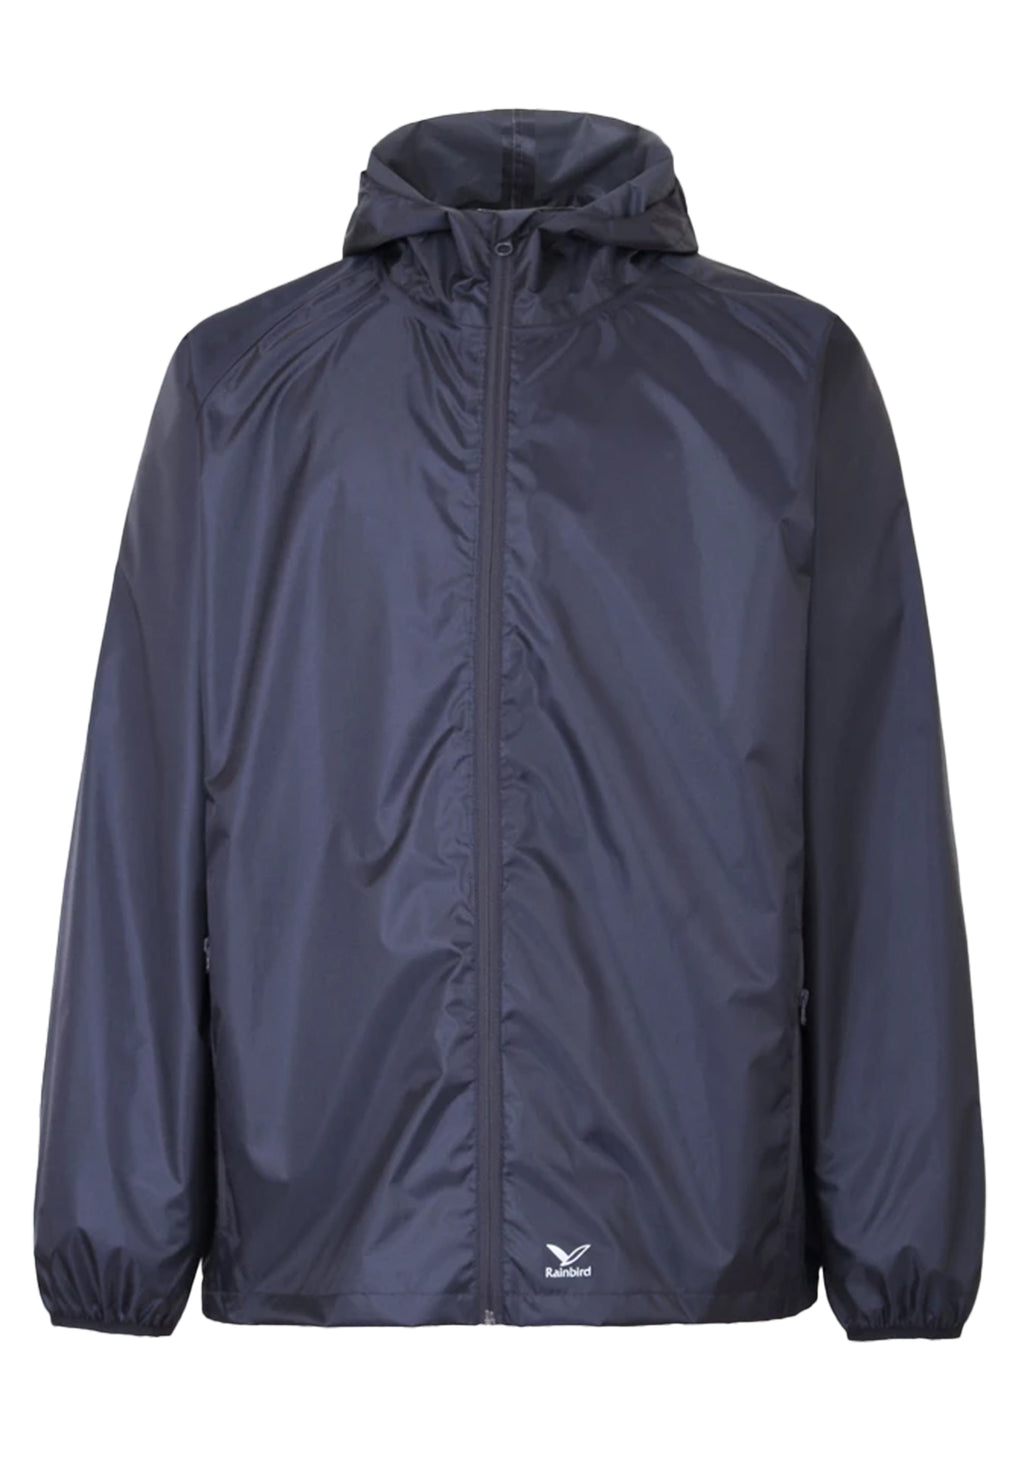 RAINBIRD UNISEX ADULTS GOSTOW RAIN JACKET NAVY <BR> 8531 NVY